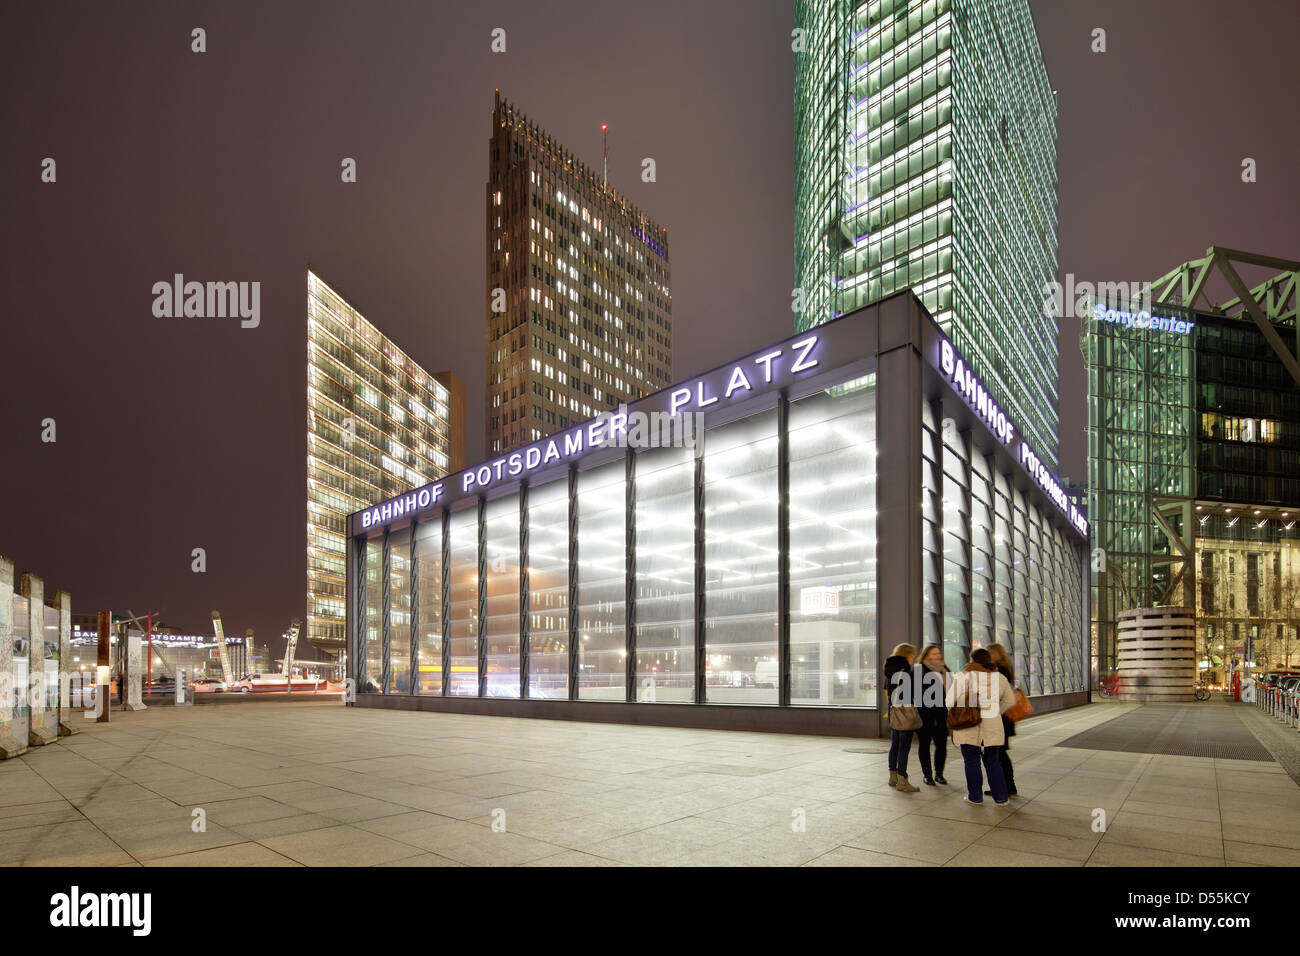 Berlin, Germany, illuminated front buildings at Potsdamer Platz at night Stock Photo